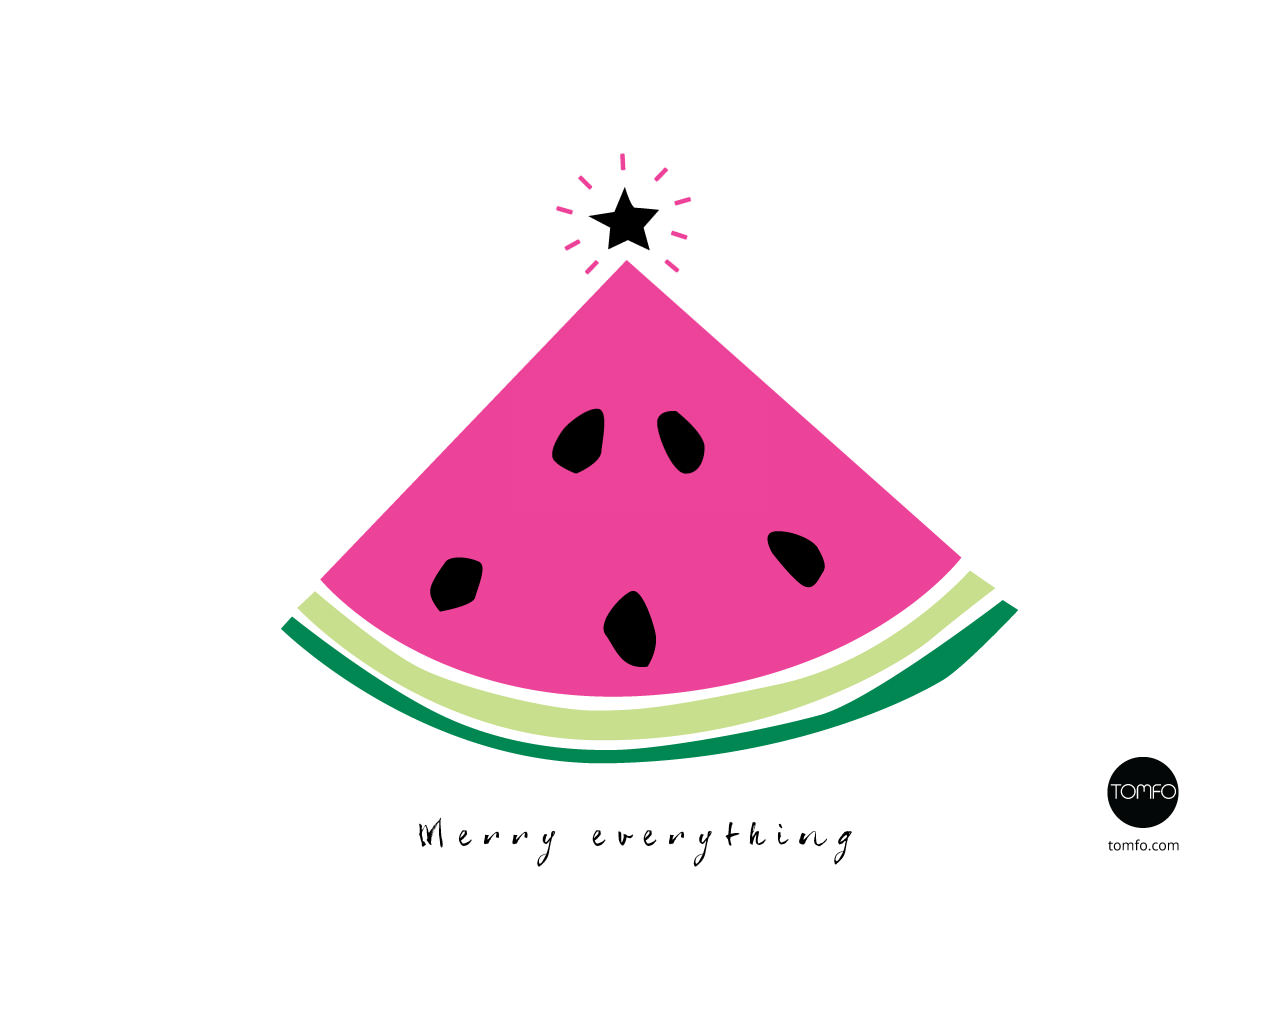 merry everything watermelon wallpaper for computer